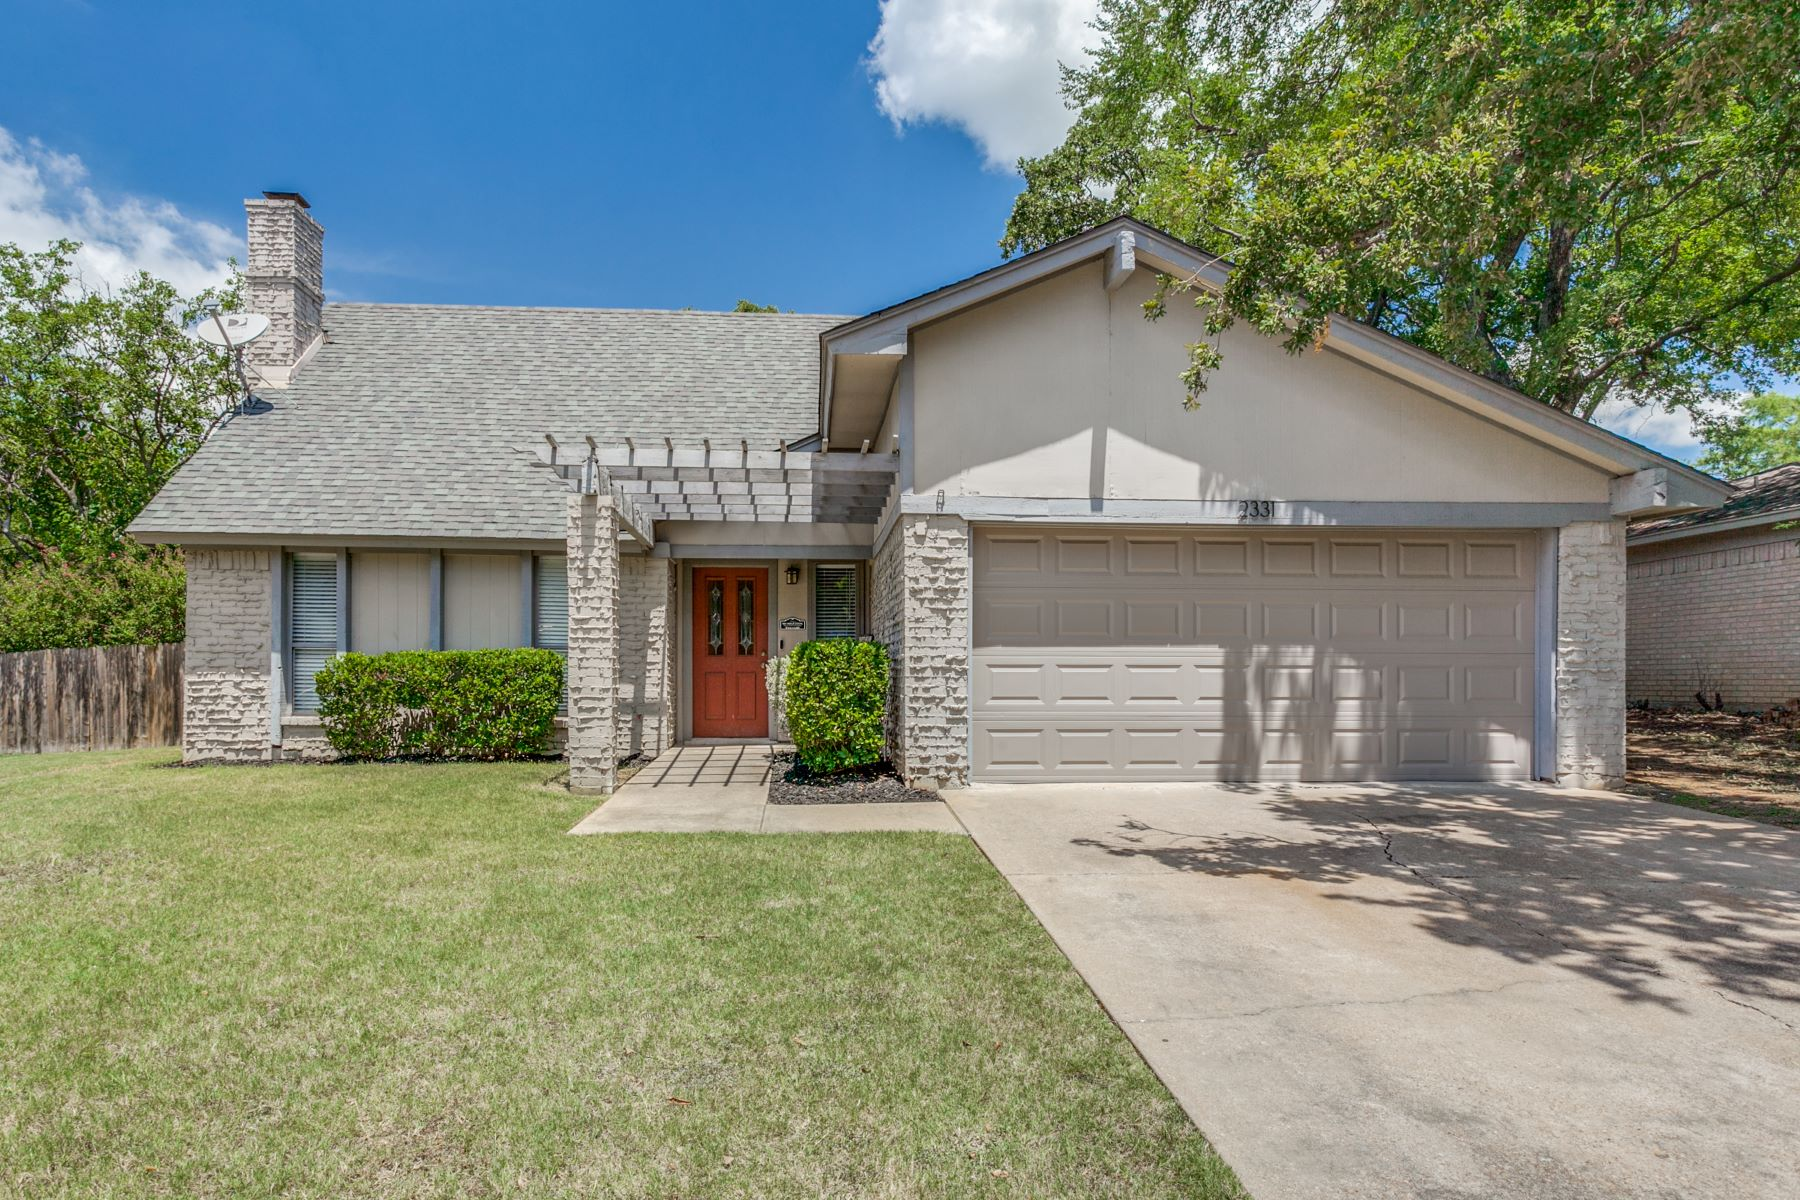 Single Family Homes for Sale at Home Run in Arlington! 2331 Lucas Drive Arlington, Texas 76015 United States